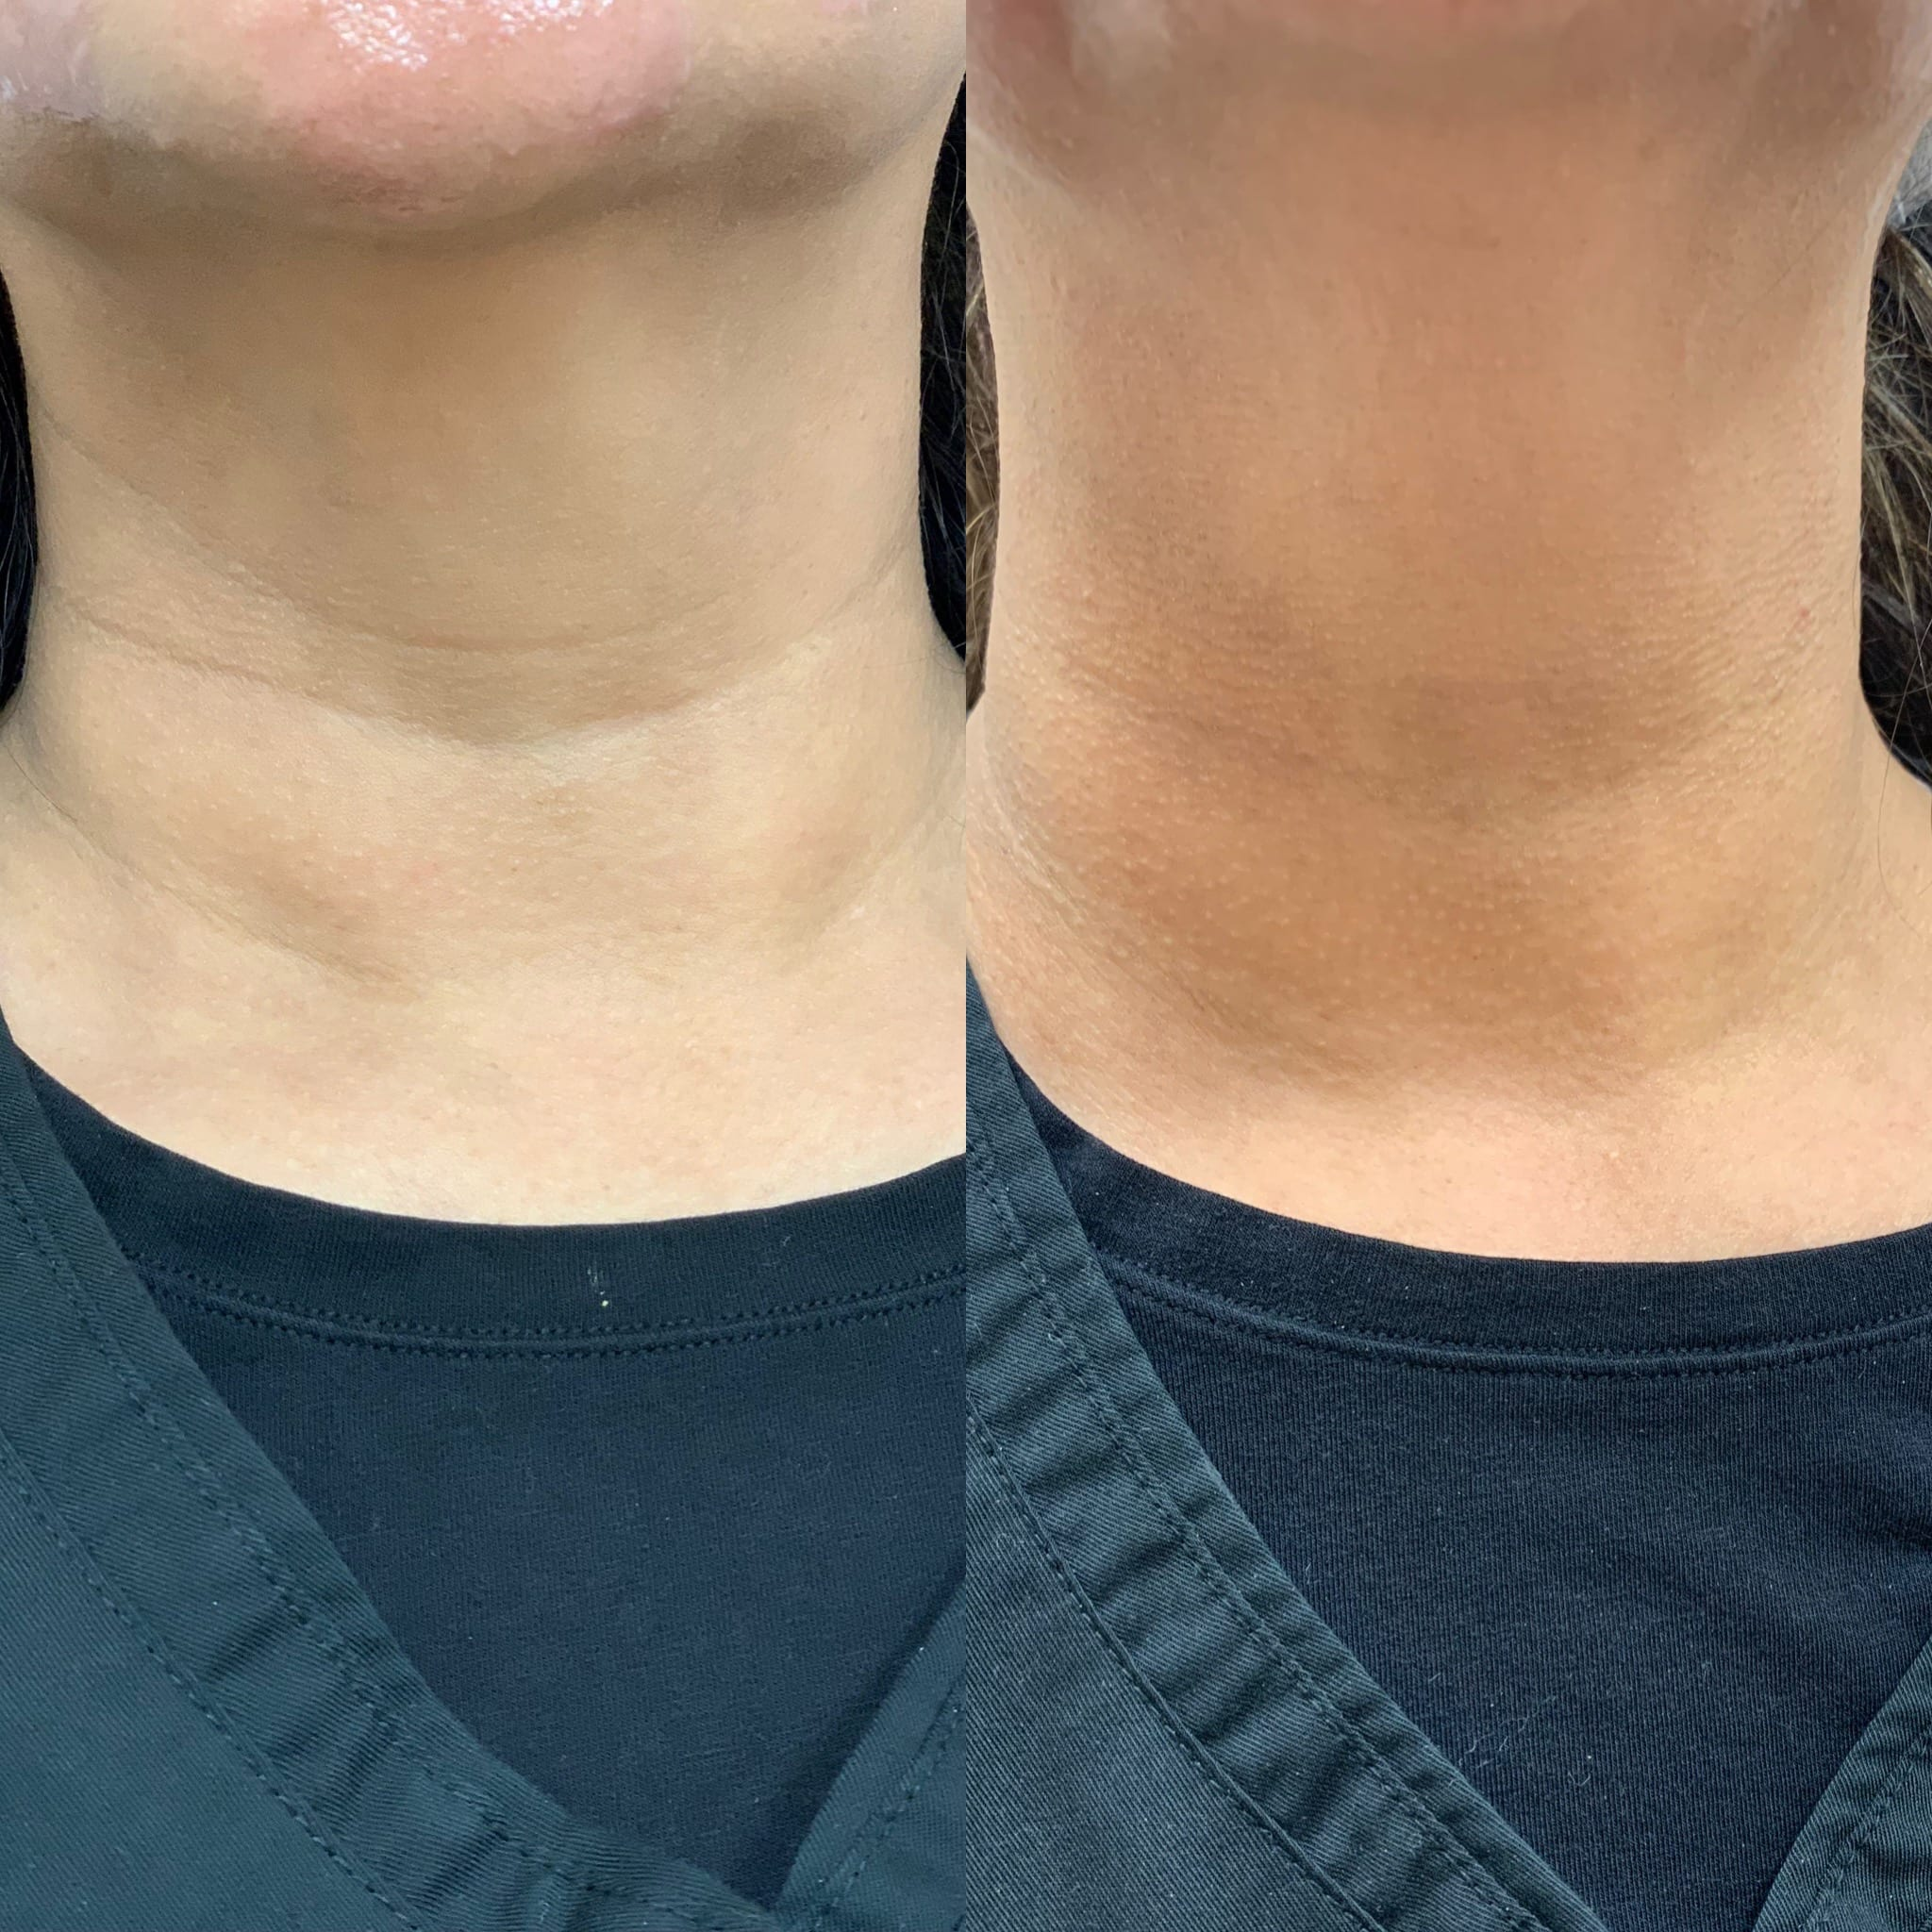 48 y/o Filipino F 2 weeks after injecting vollure to her neck lines.